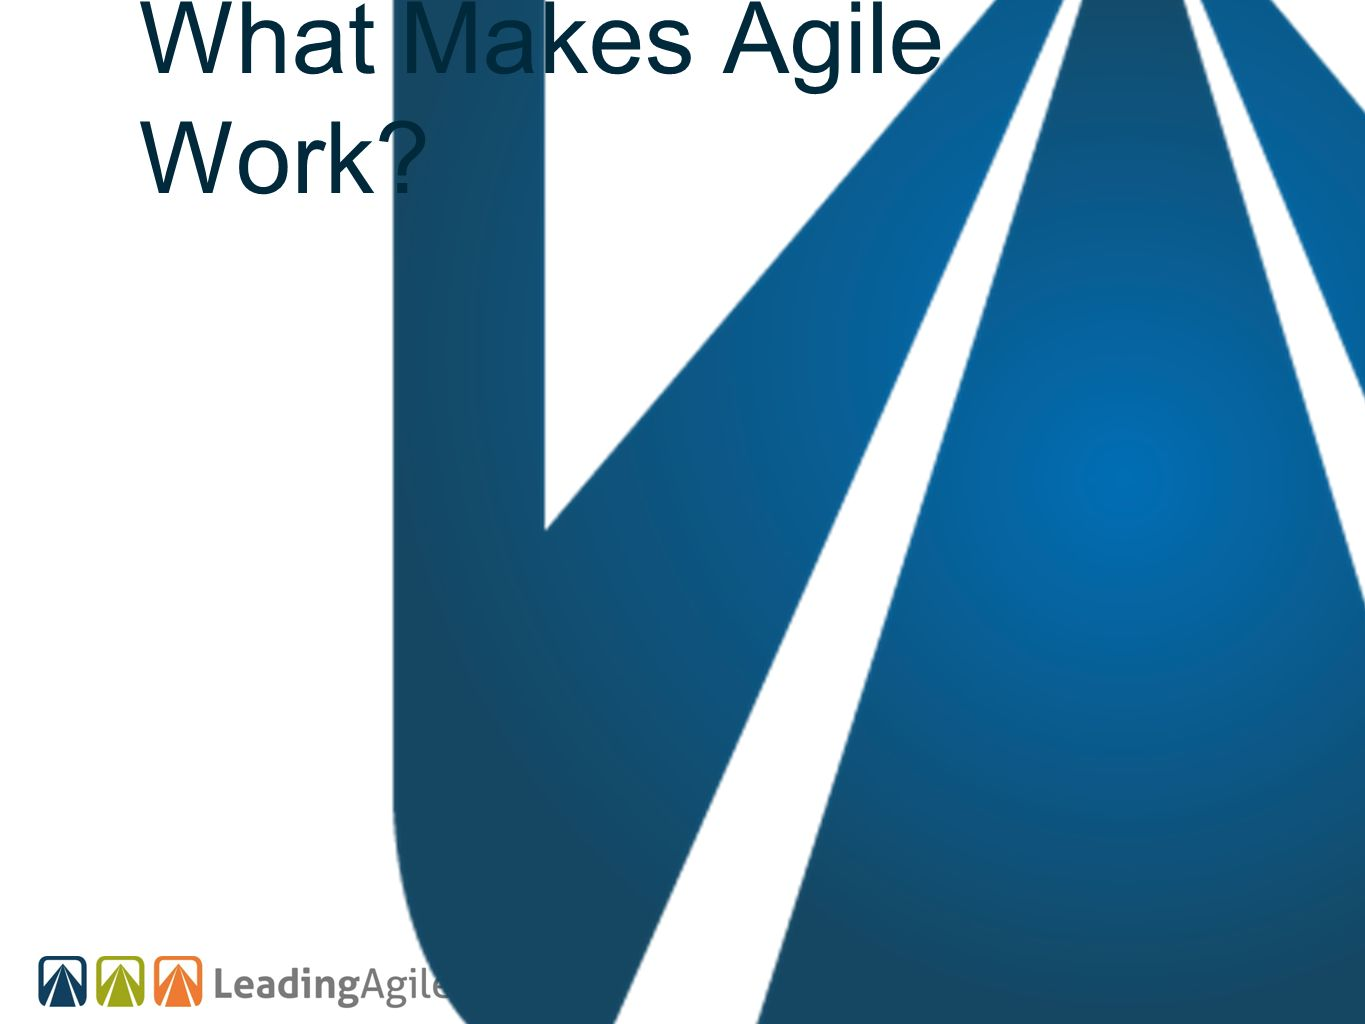 What Makes Agile Work?